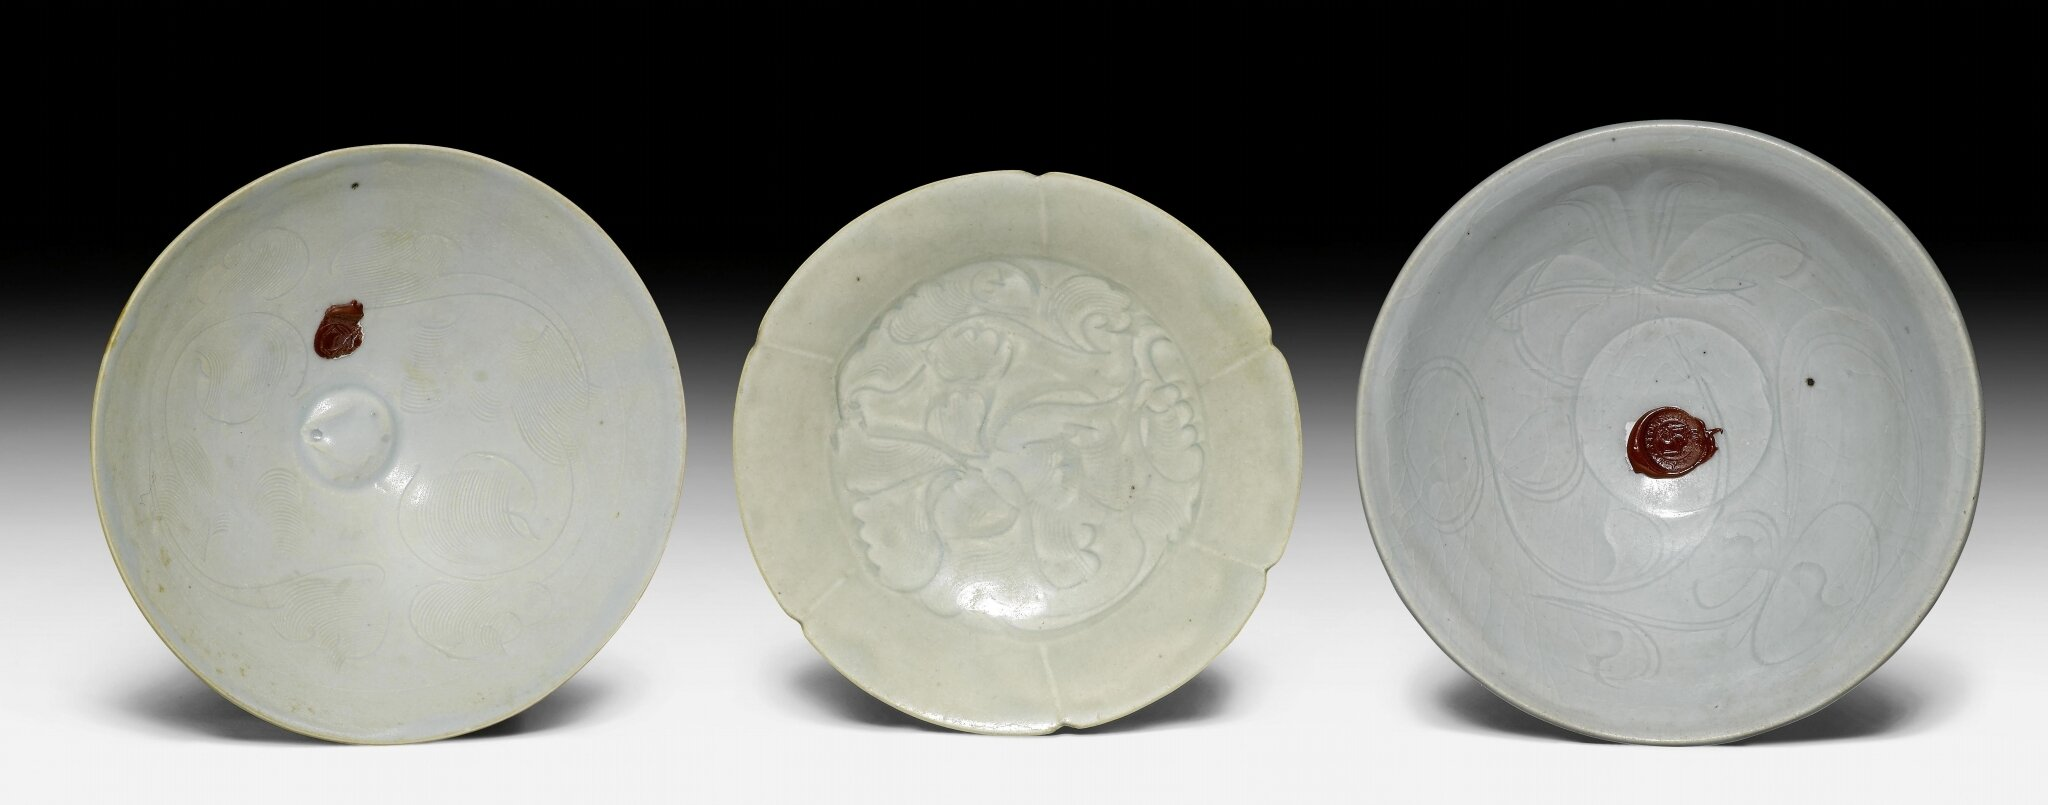 Three Qingbai glazed dishes with incised and combed floral designs, China, Southern Song dynasty